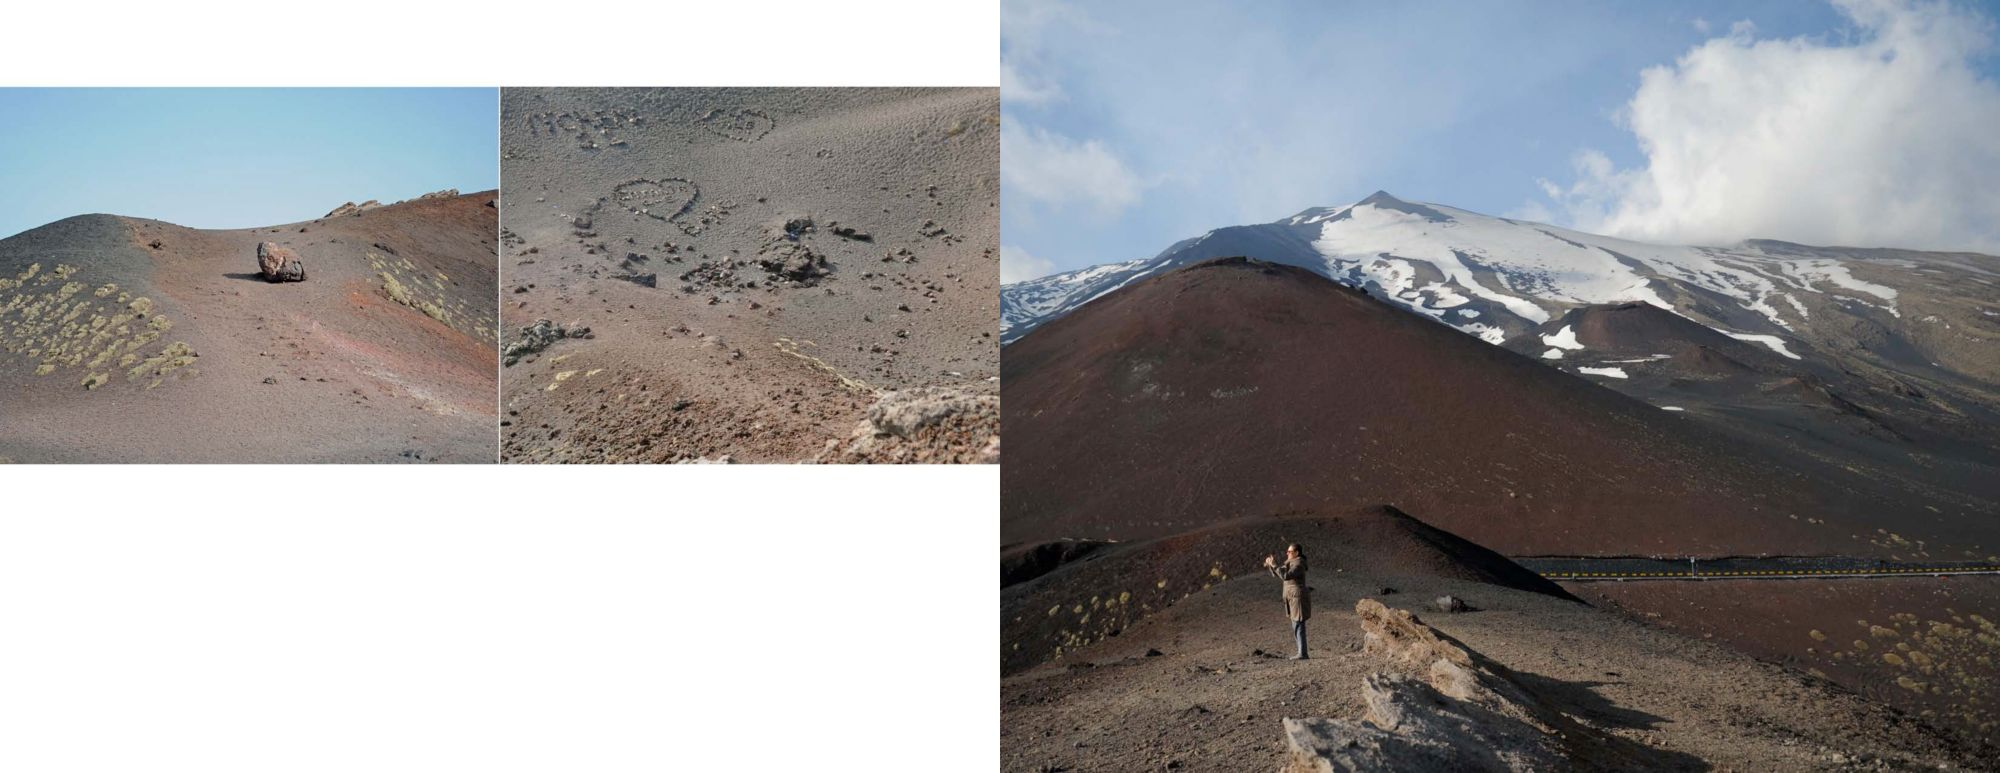 Sicily Album - Pages 62-63: On Mount Etna